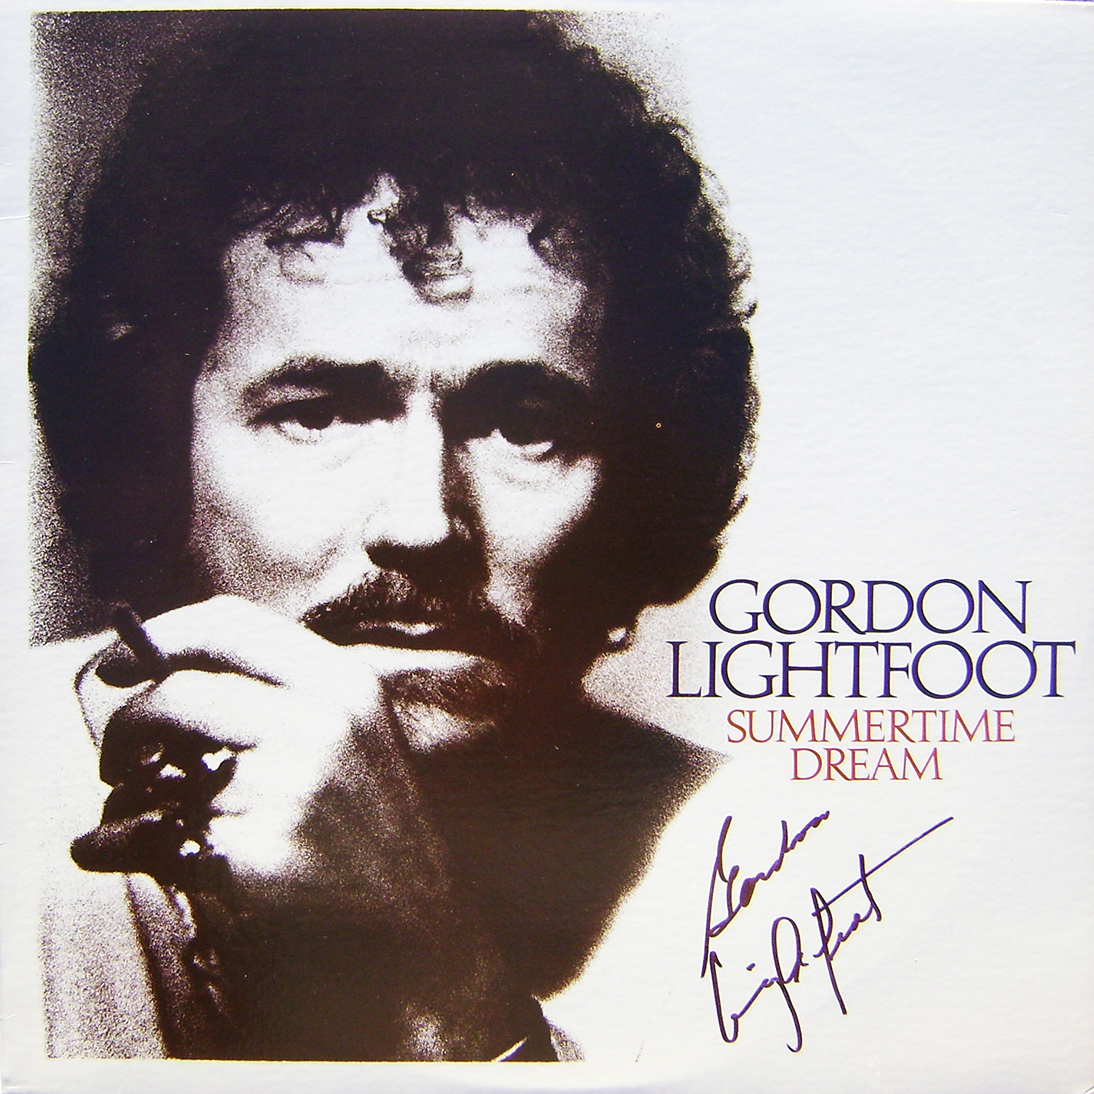 Gordon Lightfoot LP - Summertime Dream